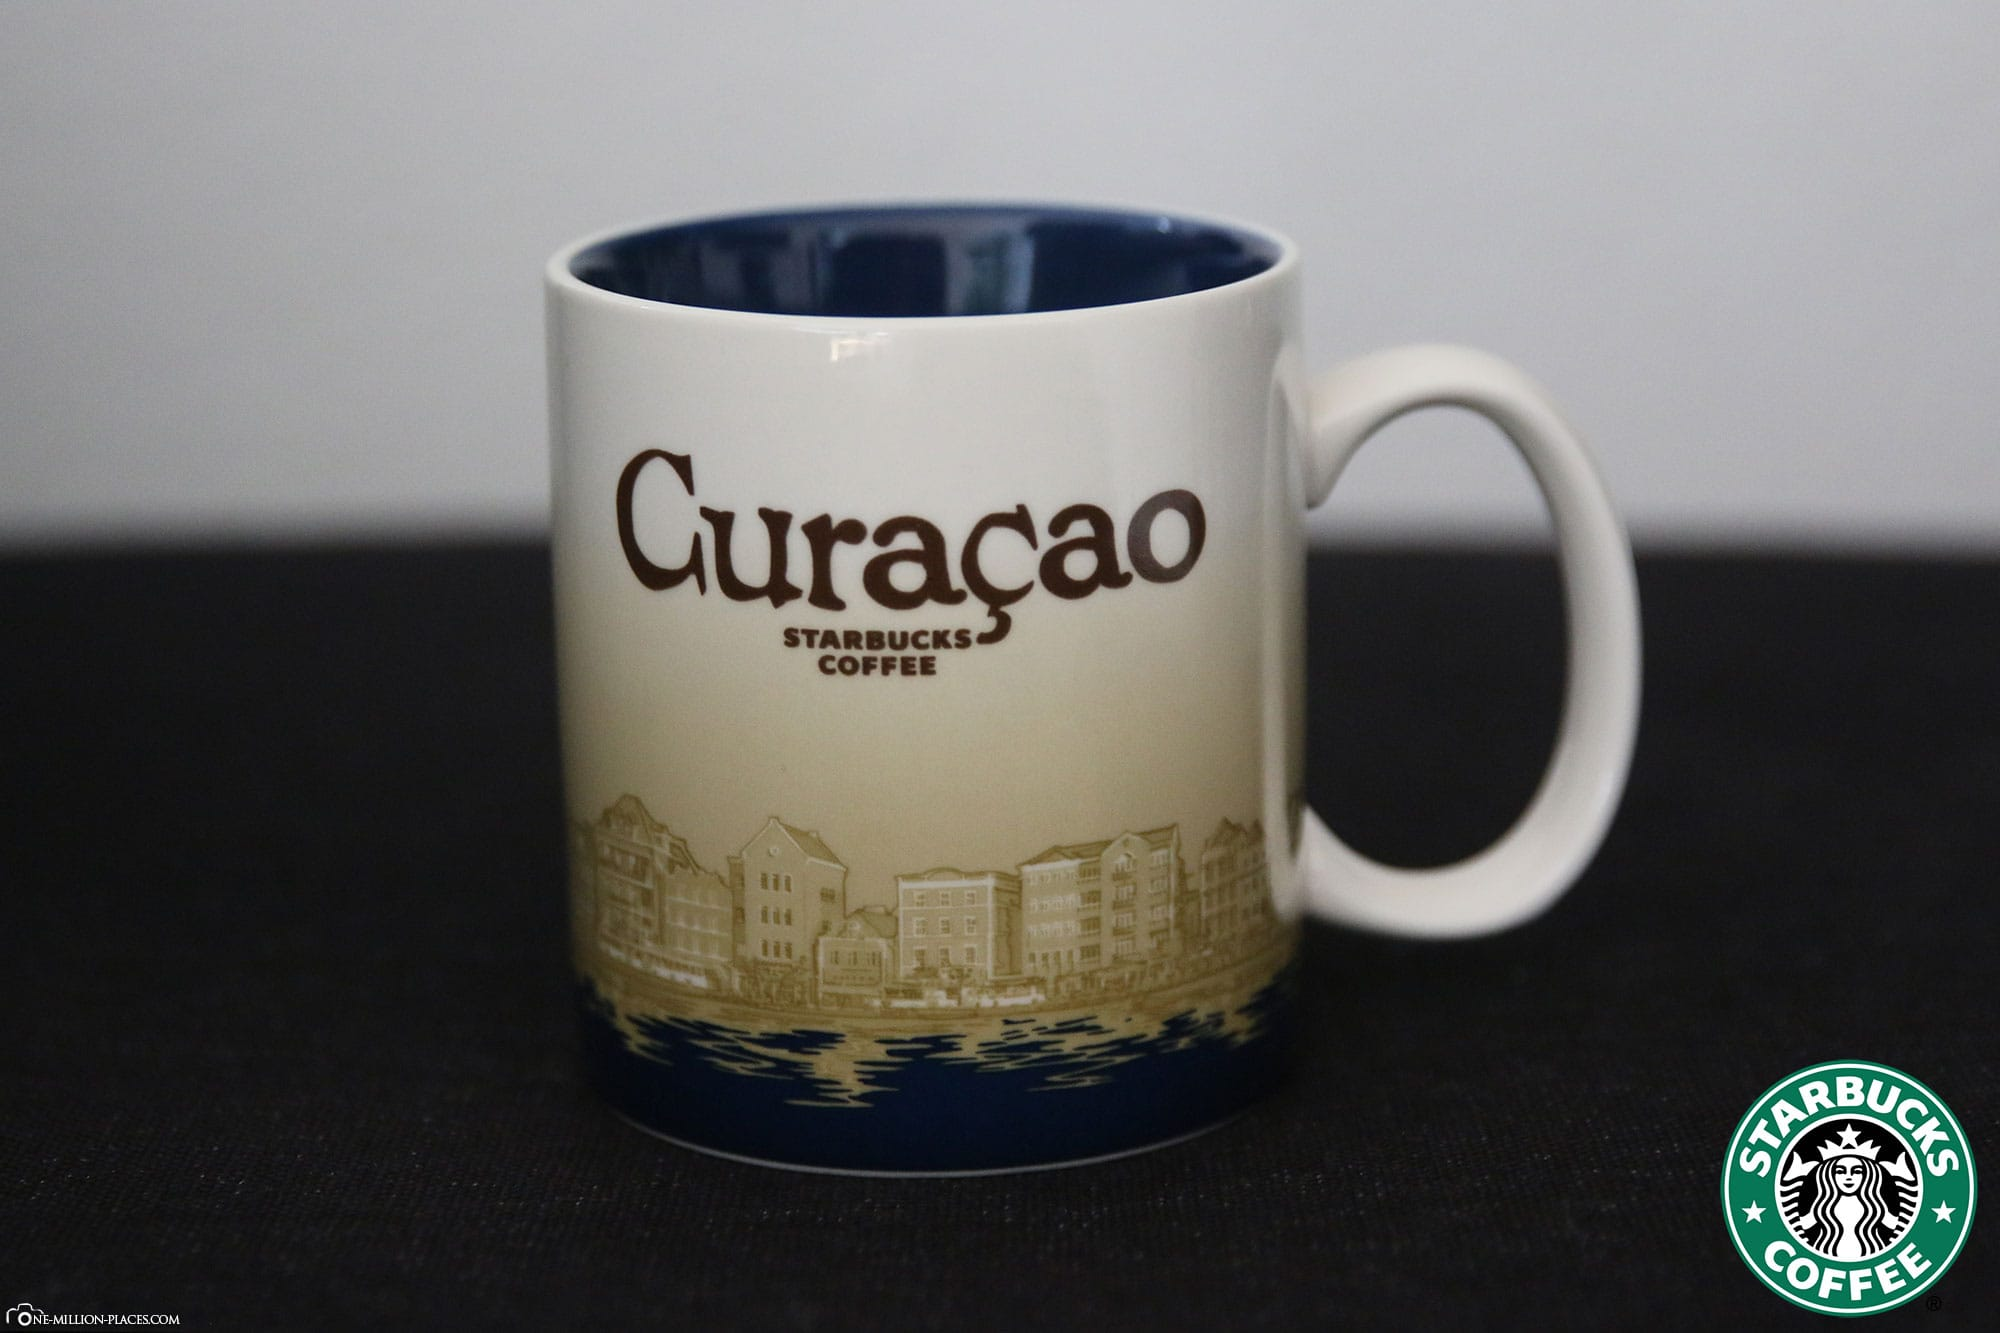 Curacao, Starbucks Tasse, Global Icon Serie, City Mugs, Sammlung, ABC Inseln, Reisebericht